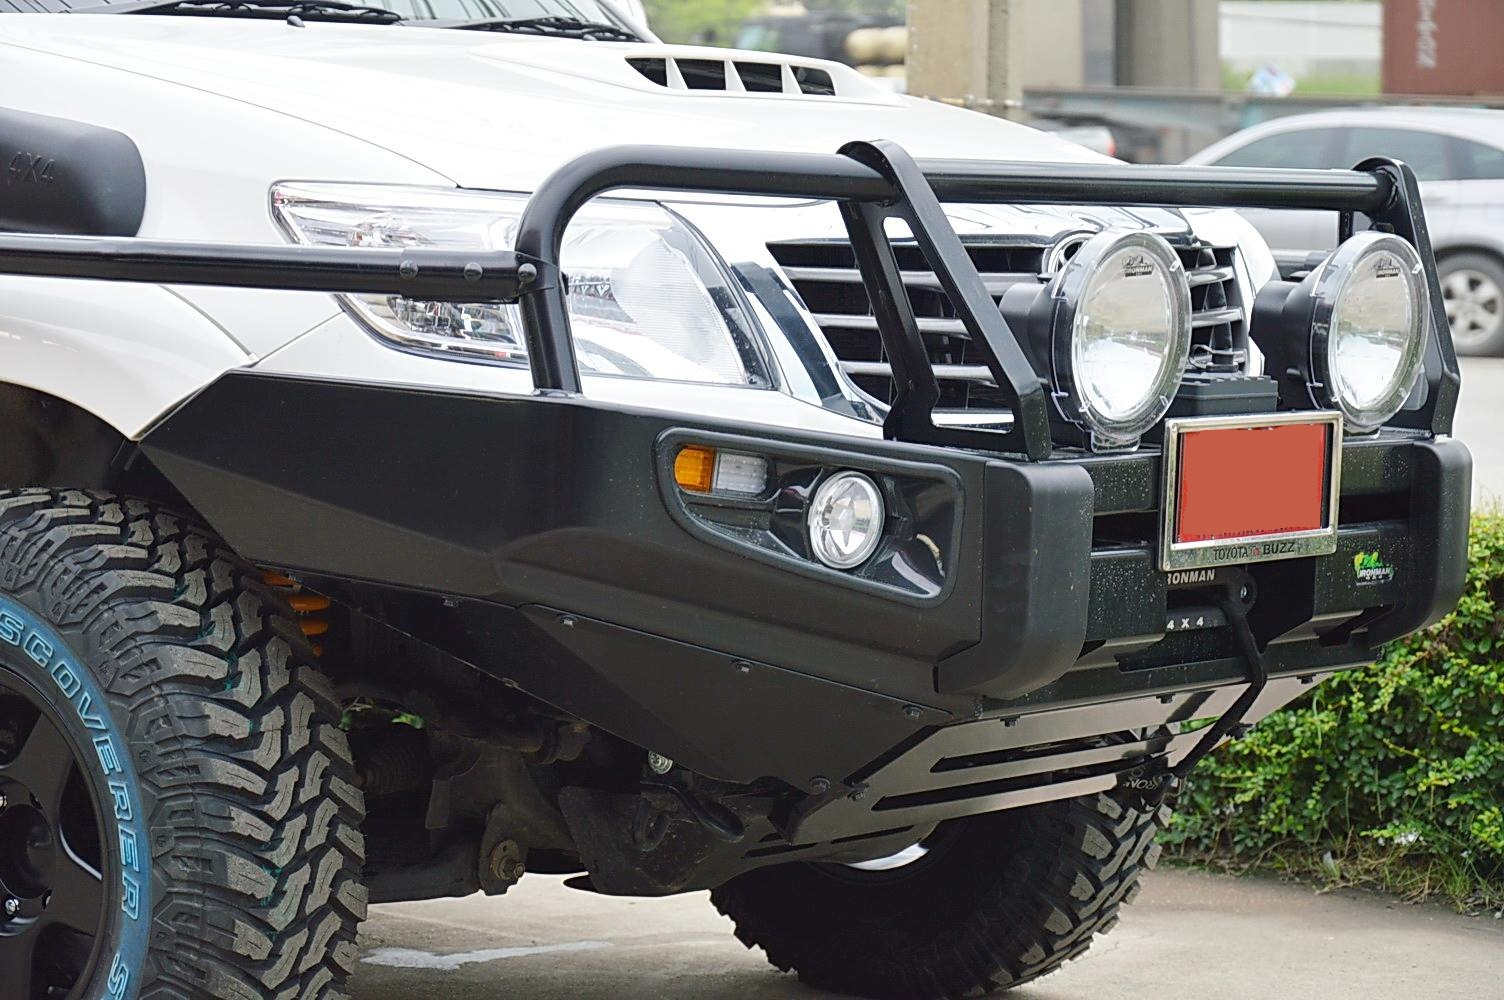 Hilux 2011 Deluxe Commercial Bull Bar Ironman 4x4 Nz